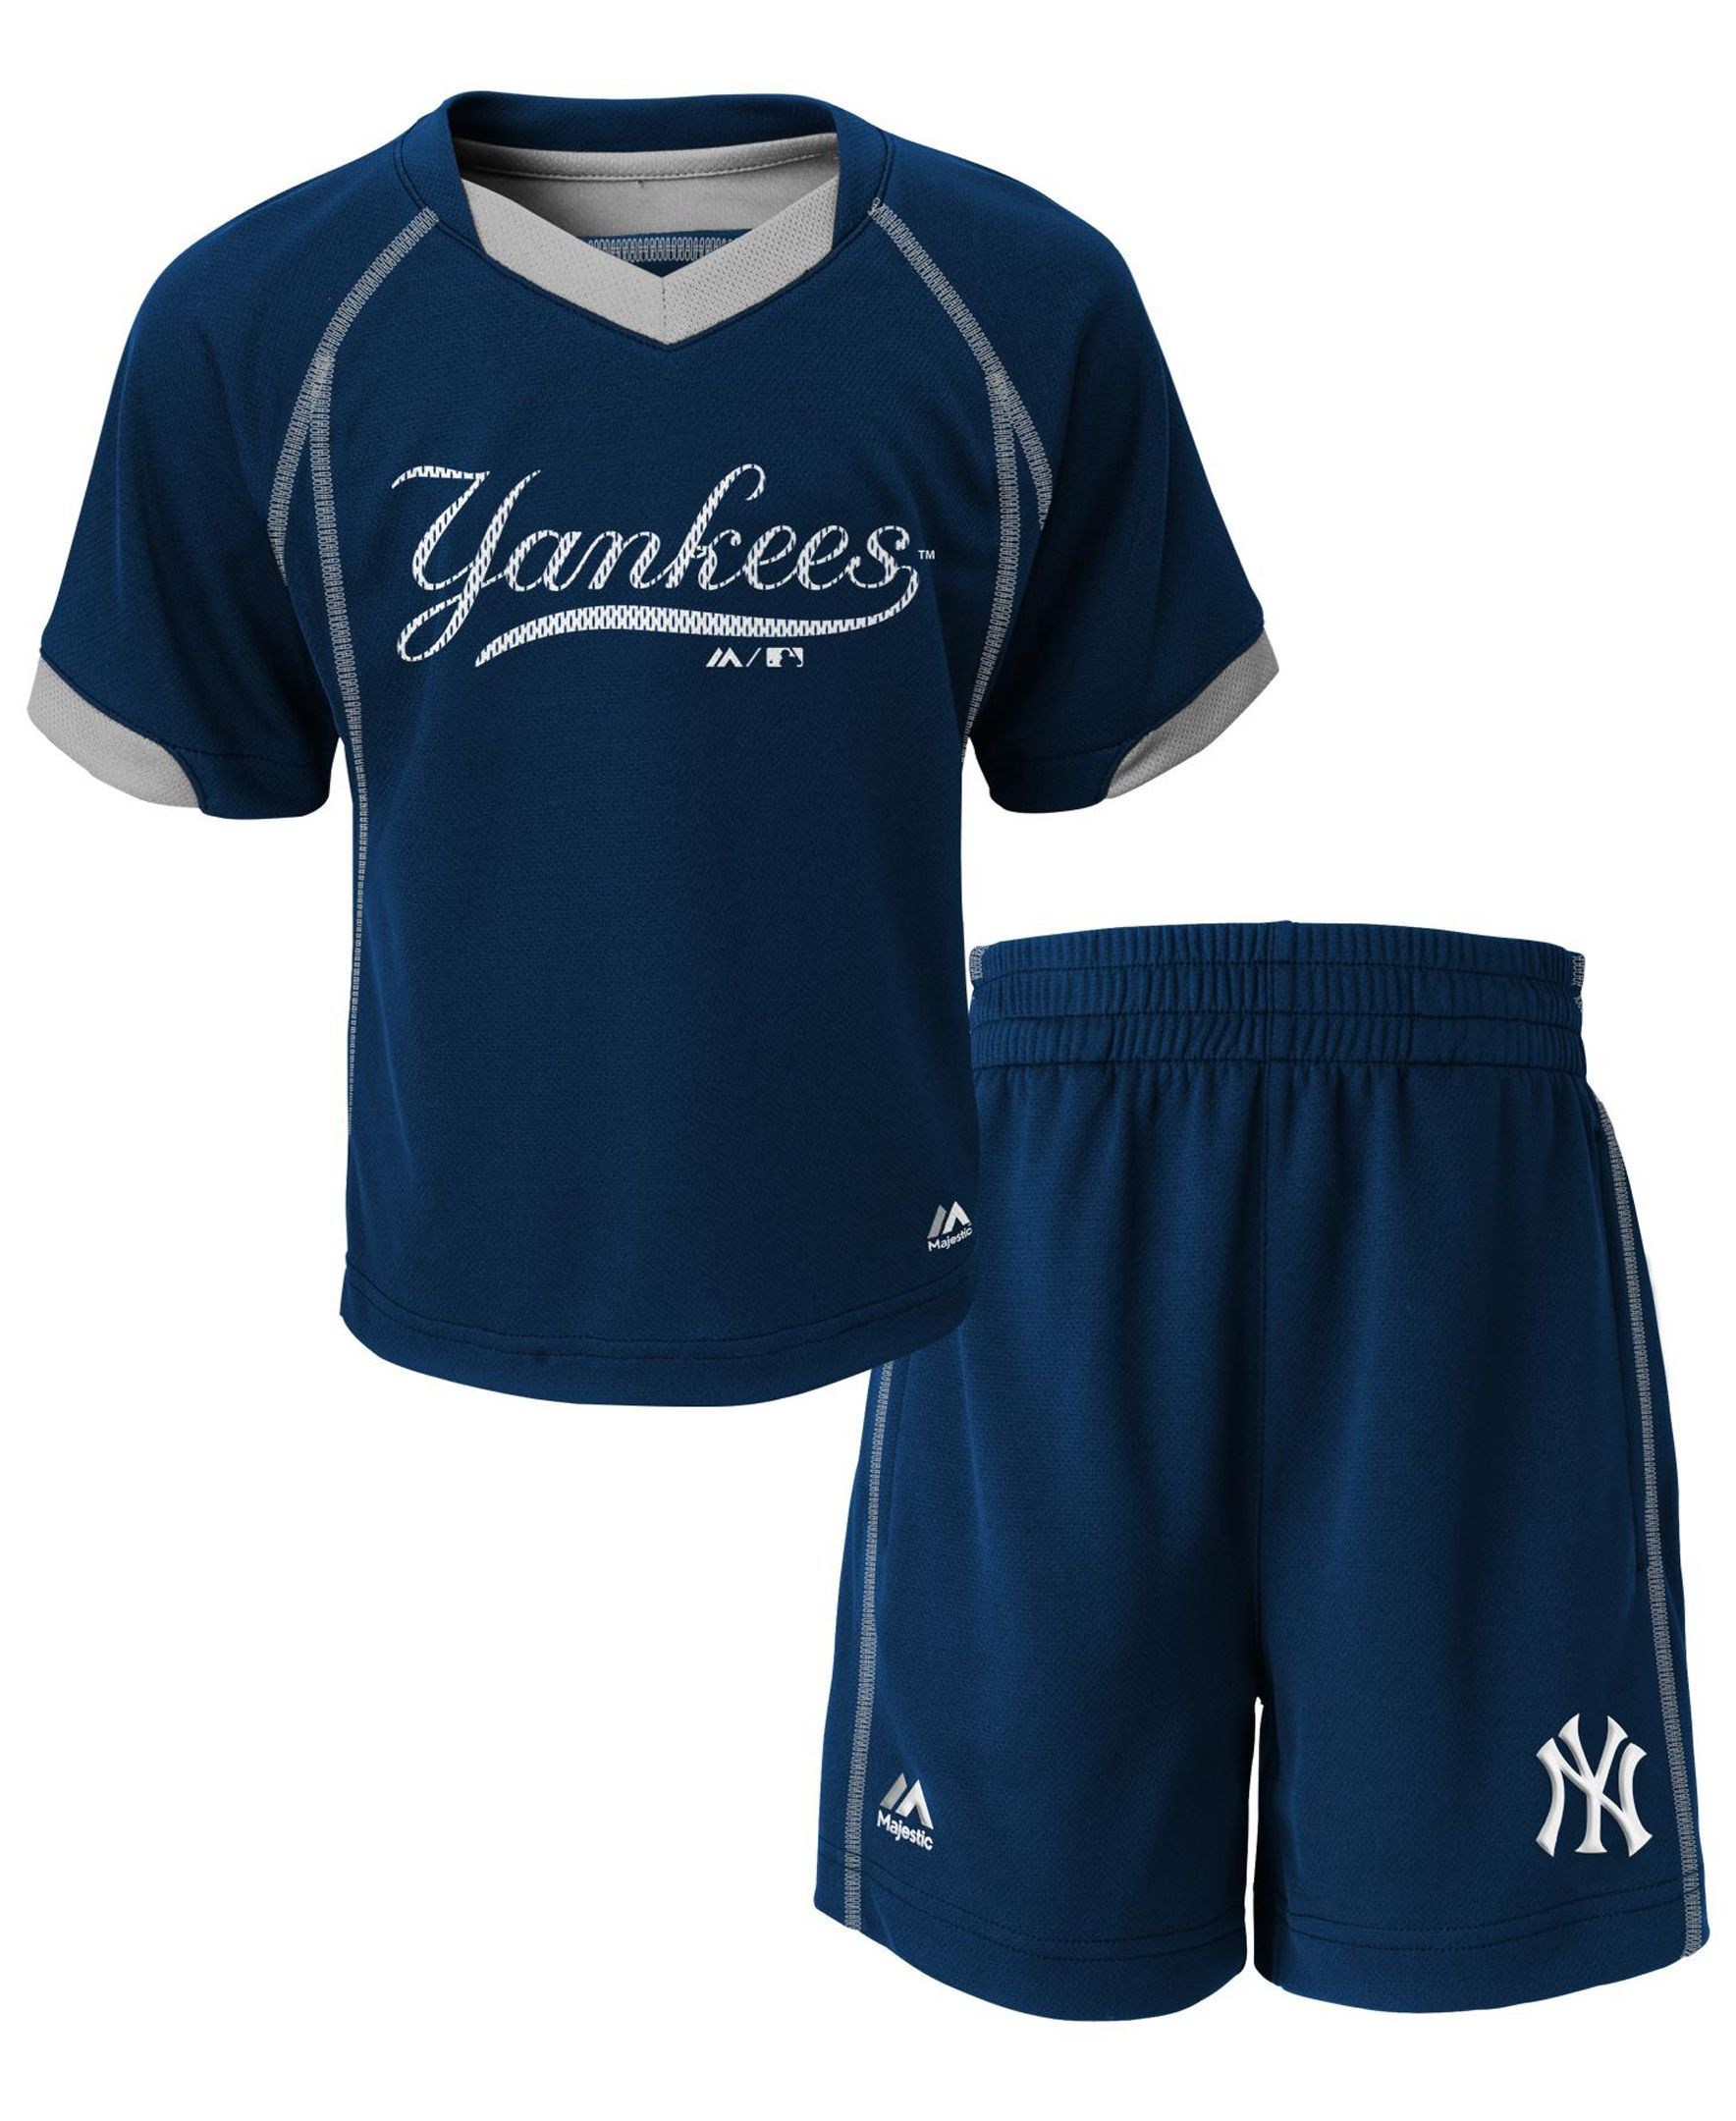 993fc1bc007 Majestic Toddlers  New York Yankees Lead Hitter Shirt and Shorts Set ...